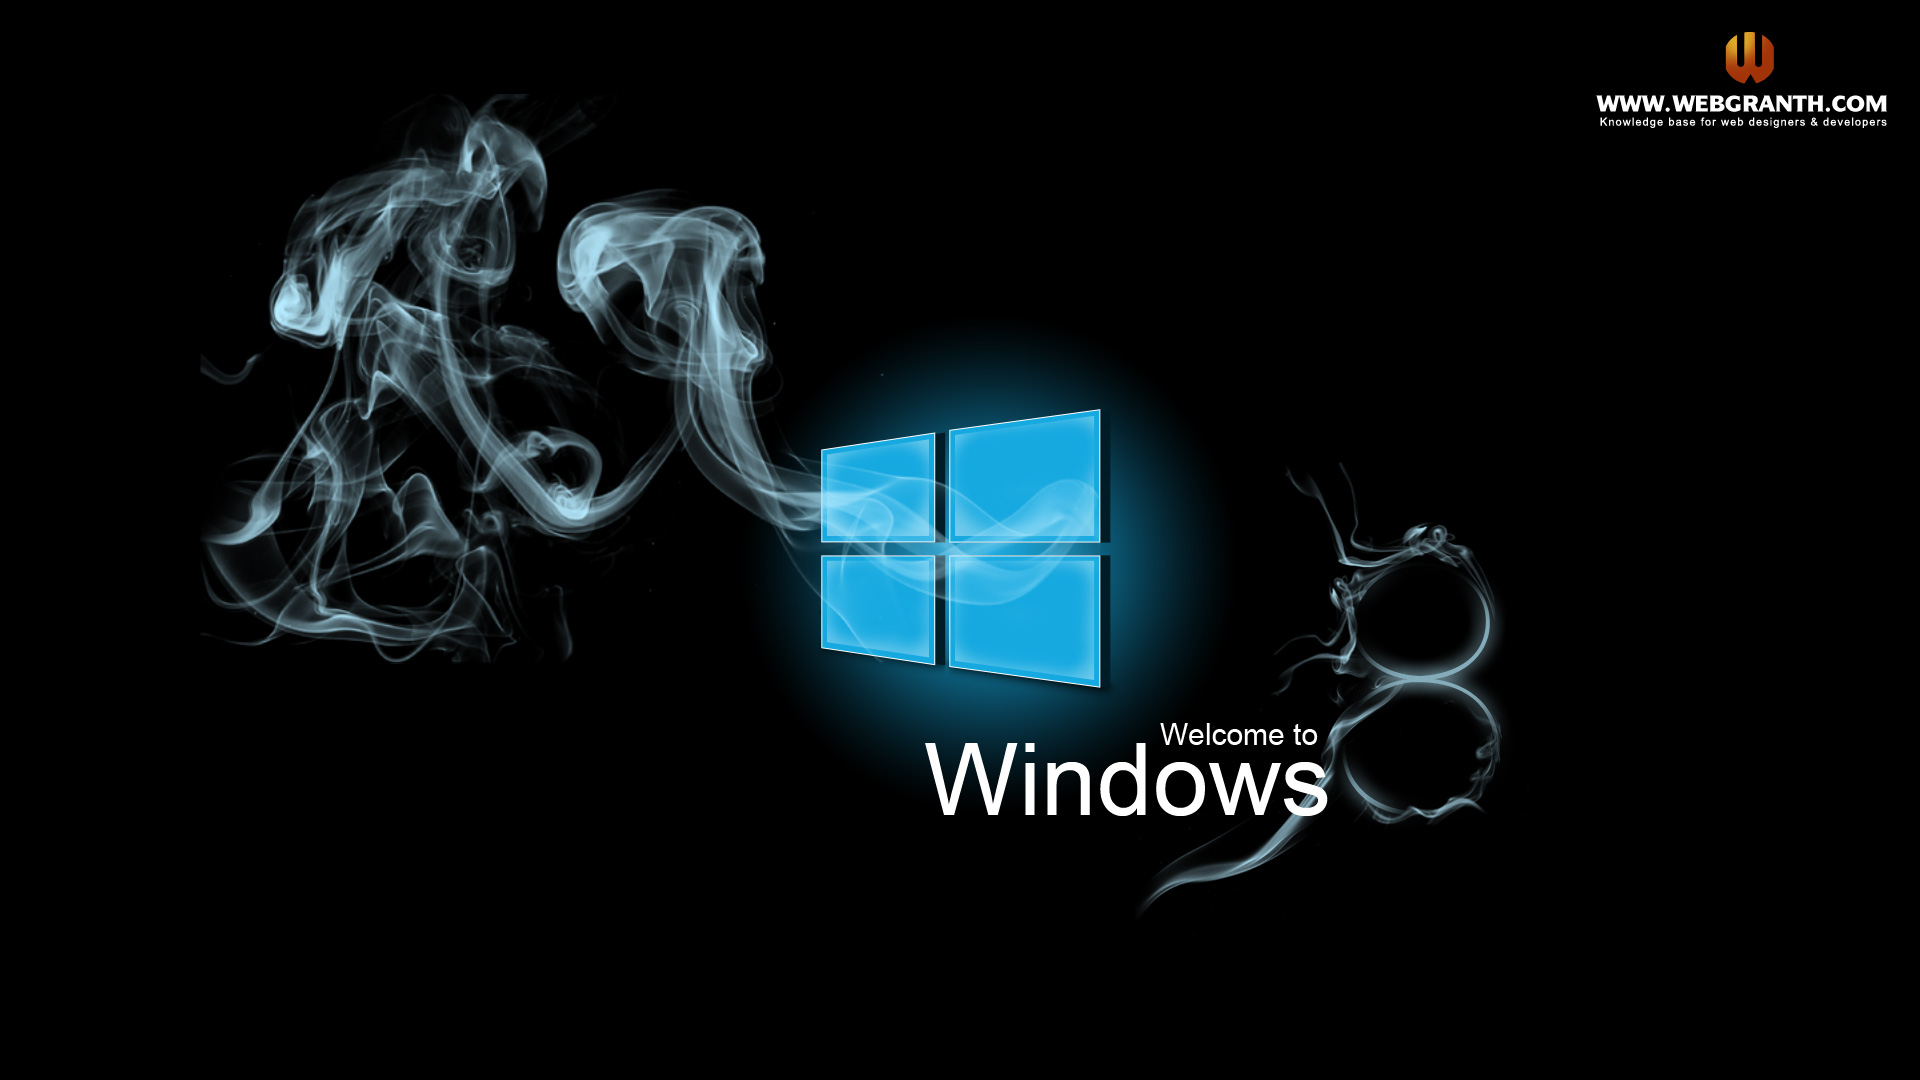 com windows 8 wallpaper collection of best window 8 wallpapers 1920x1080